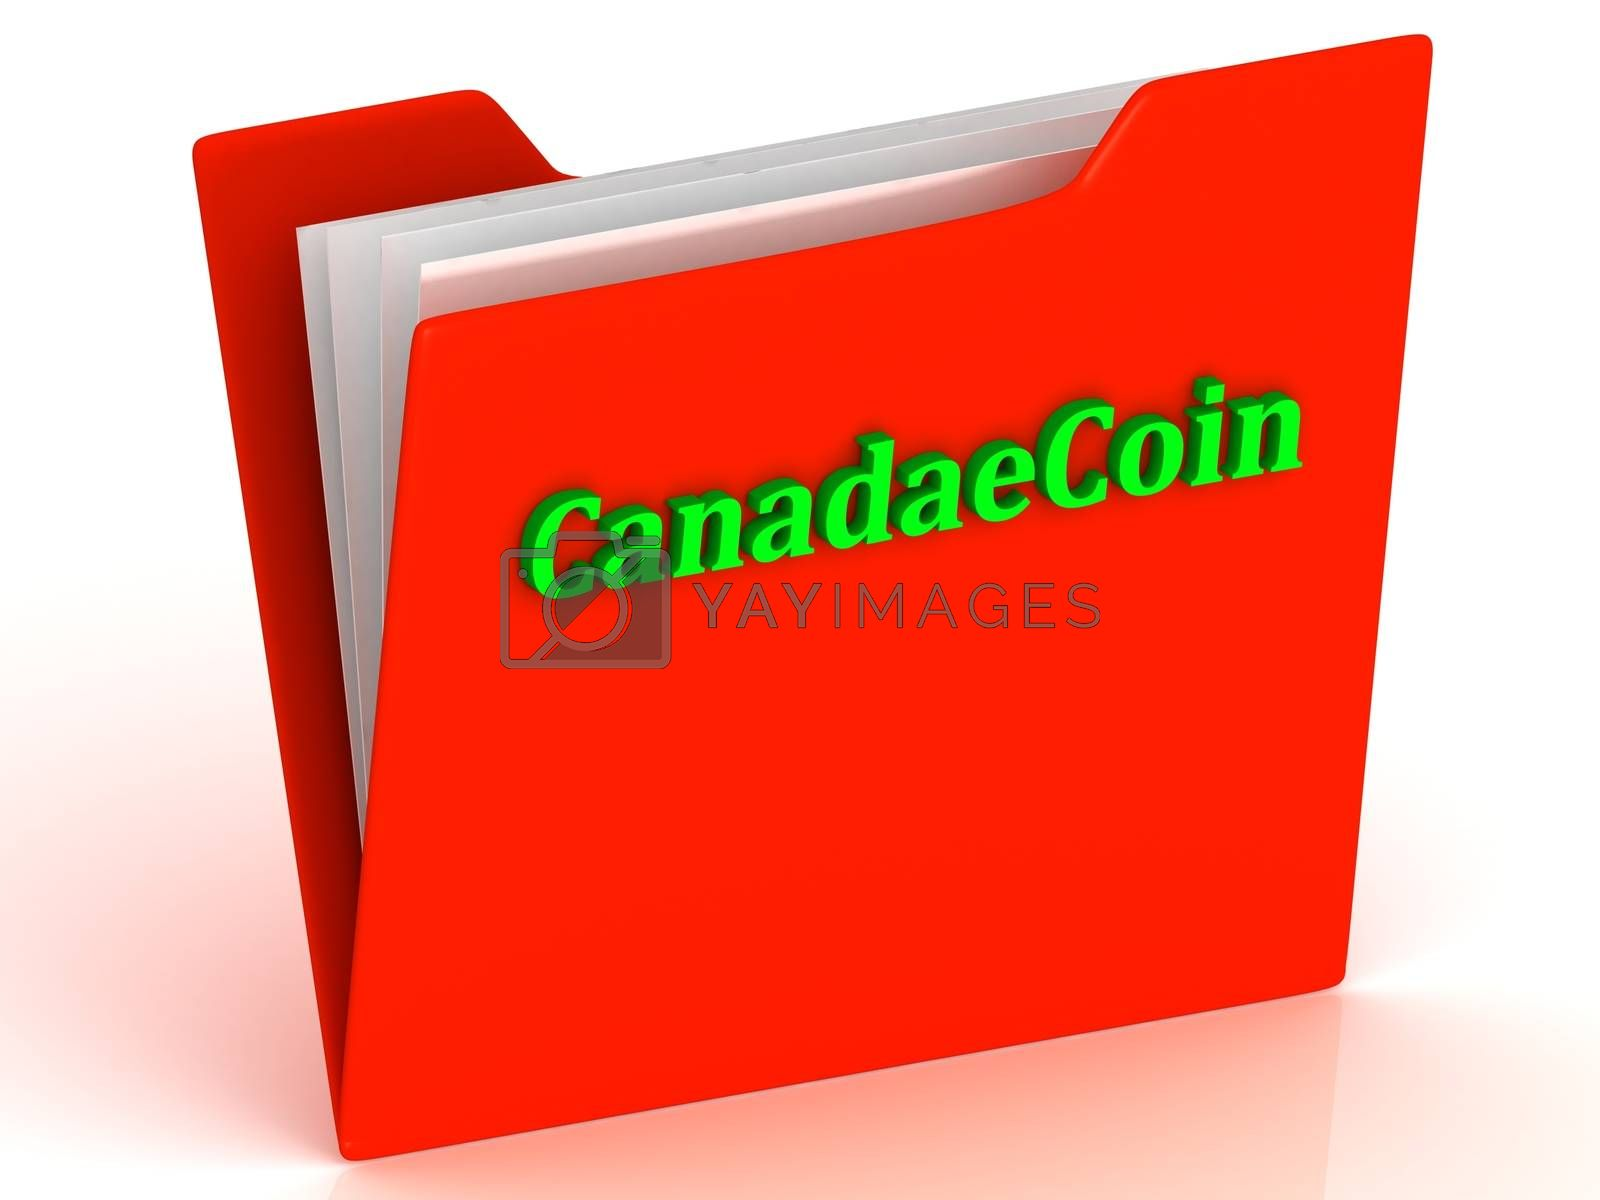 CanadaeCoin- bright green letters on a gold folder on a white background